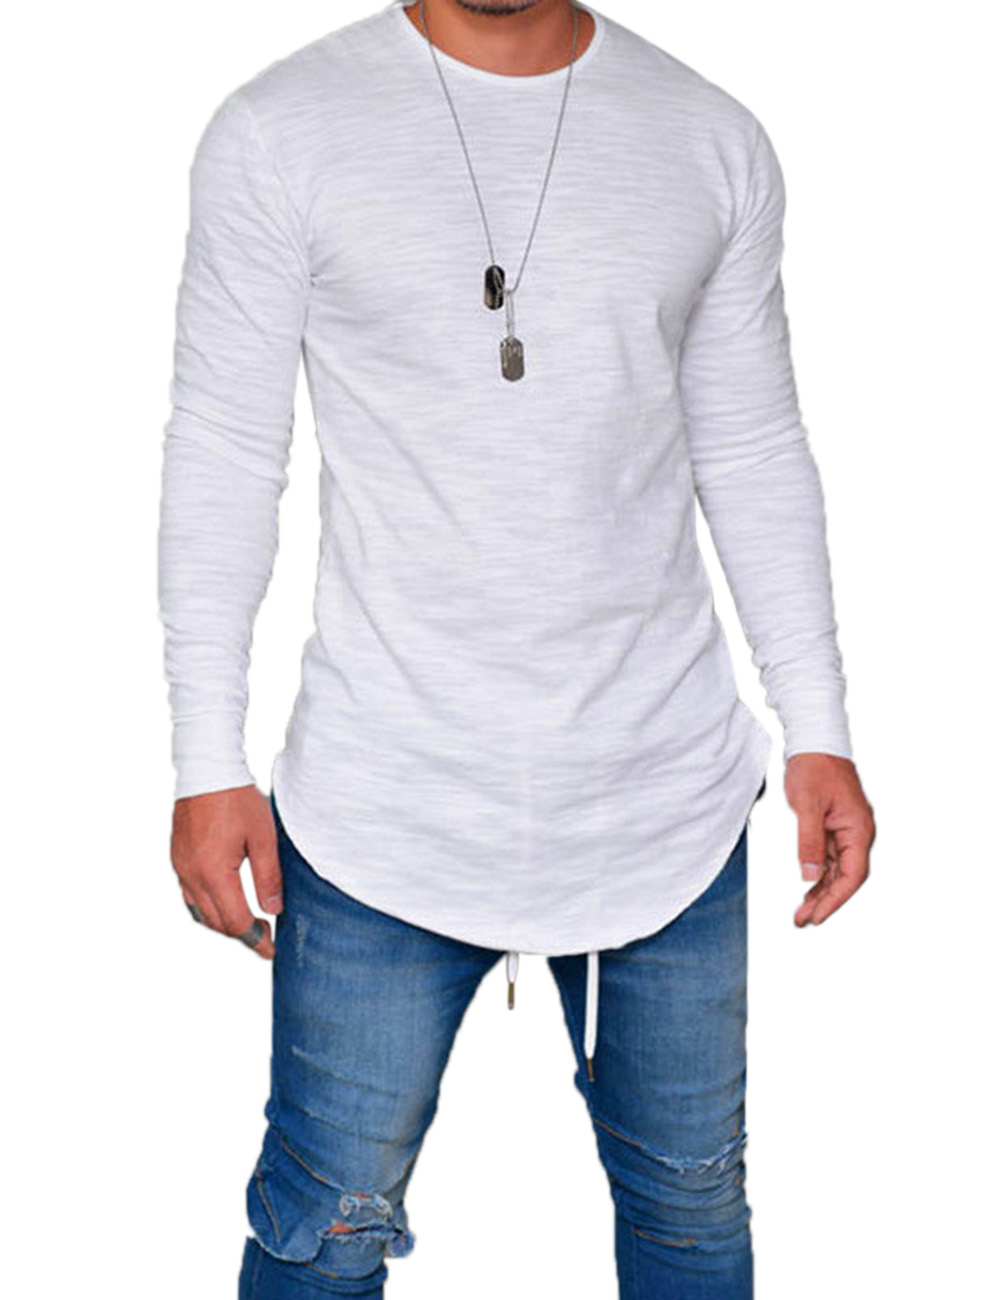 Men Round Neck Long Sleeve Tops Clothes